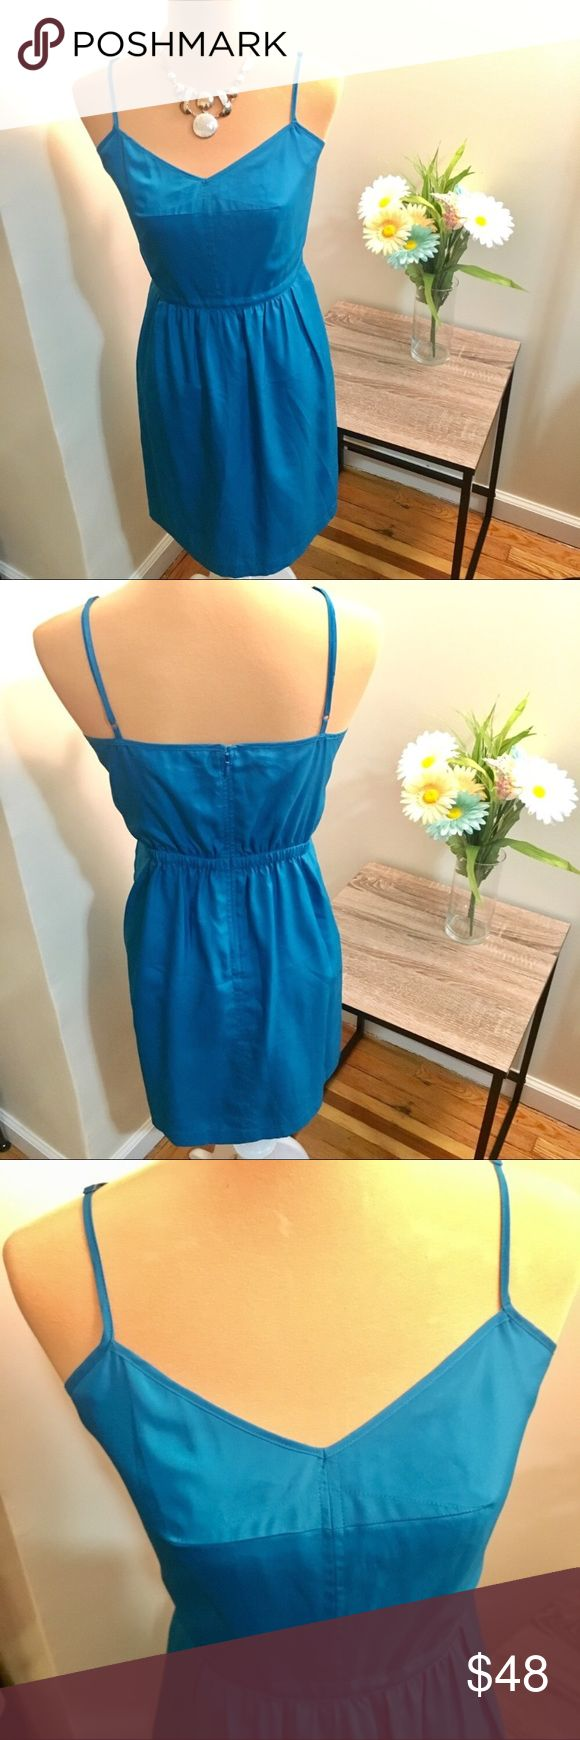 J. Crew Blue Cami Dress This J. Crew cami dress is previously owned and in excellent used condition.  Adjustable shoulder straps and zipper with clasp in back.  100% Polyester | Dry Clean Only J. Crew Dresses